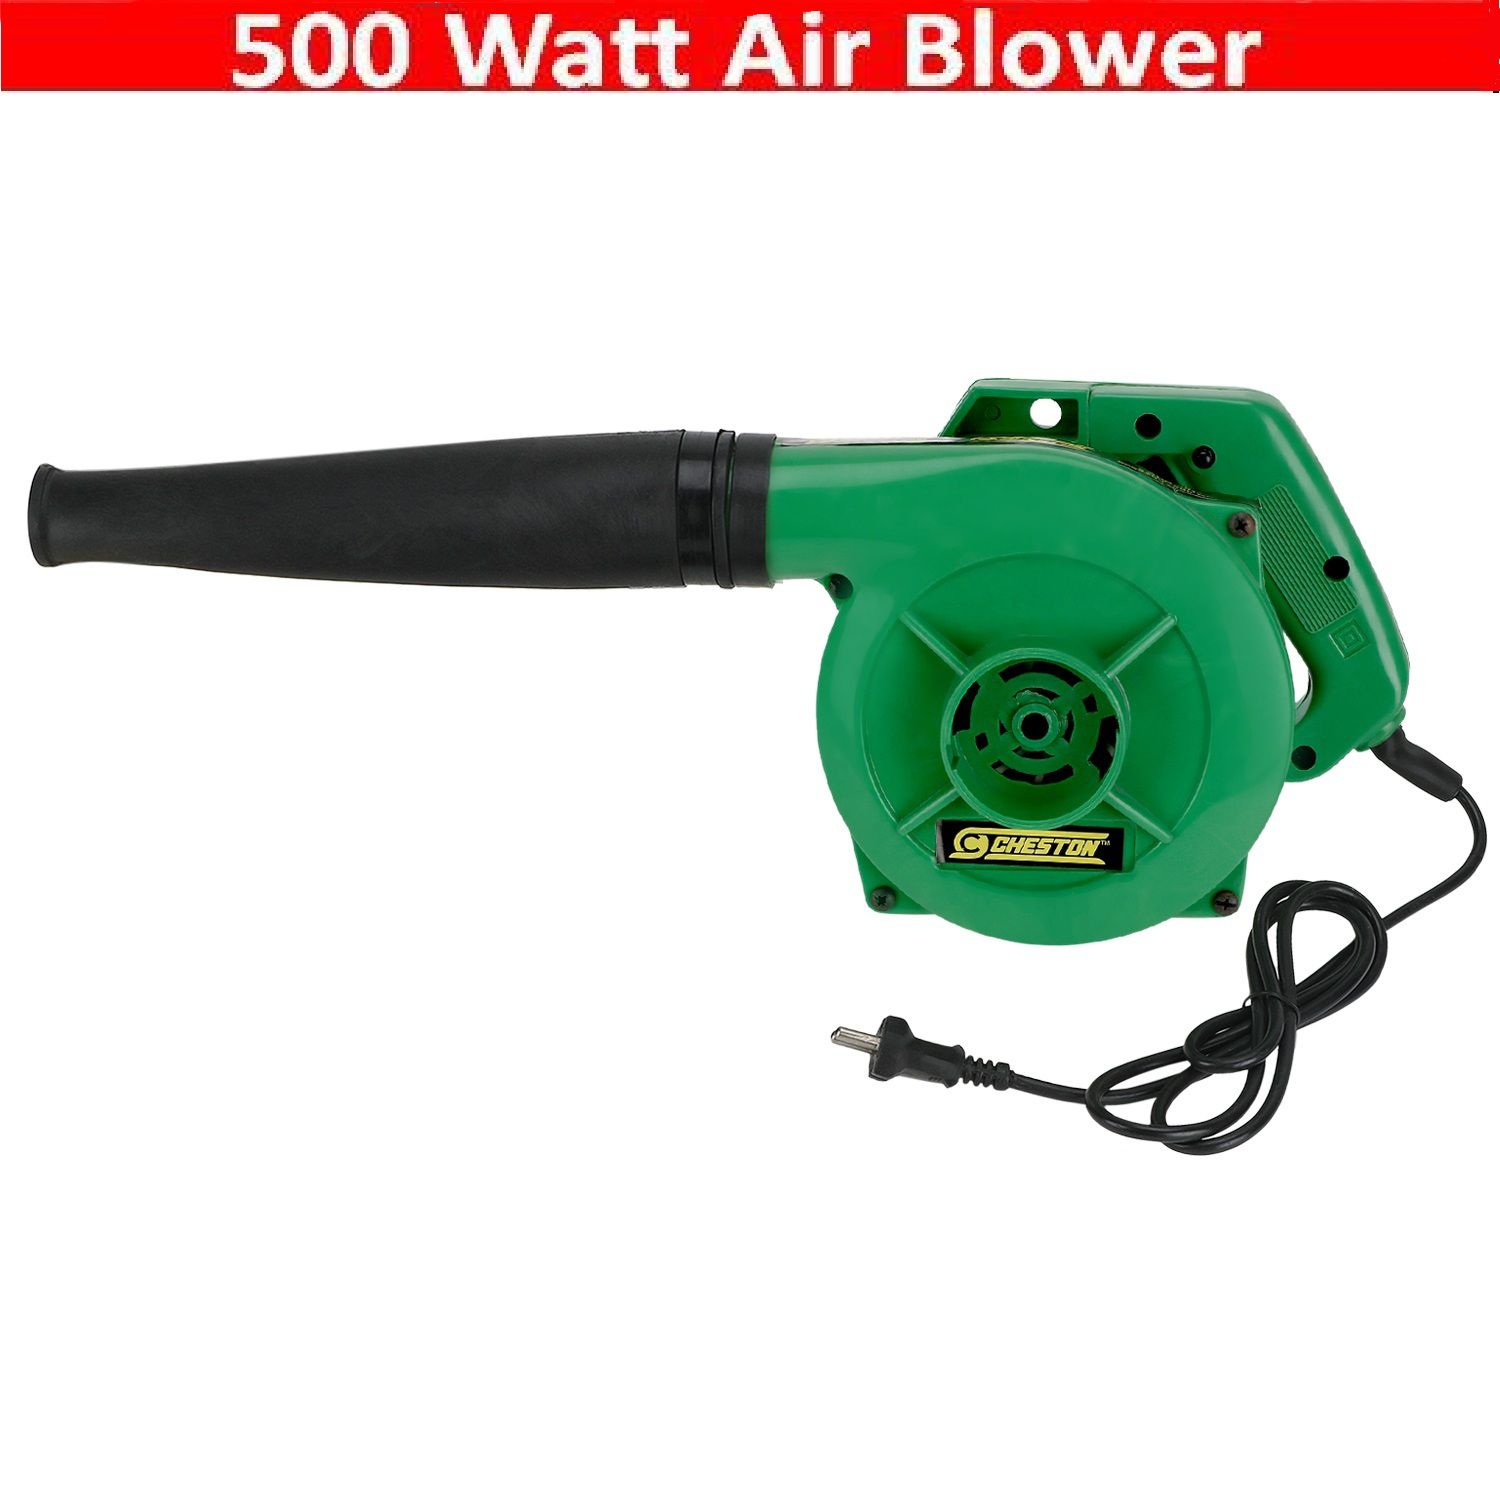 Cheston - 13000 RPM 500W Electrical Tool Powerful Air Blower Without Variable Speed